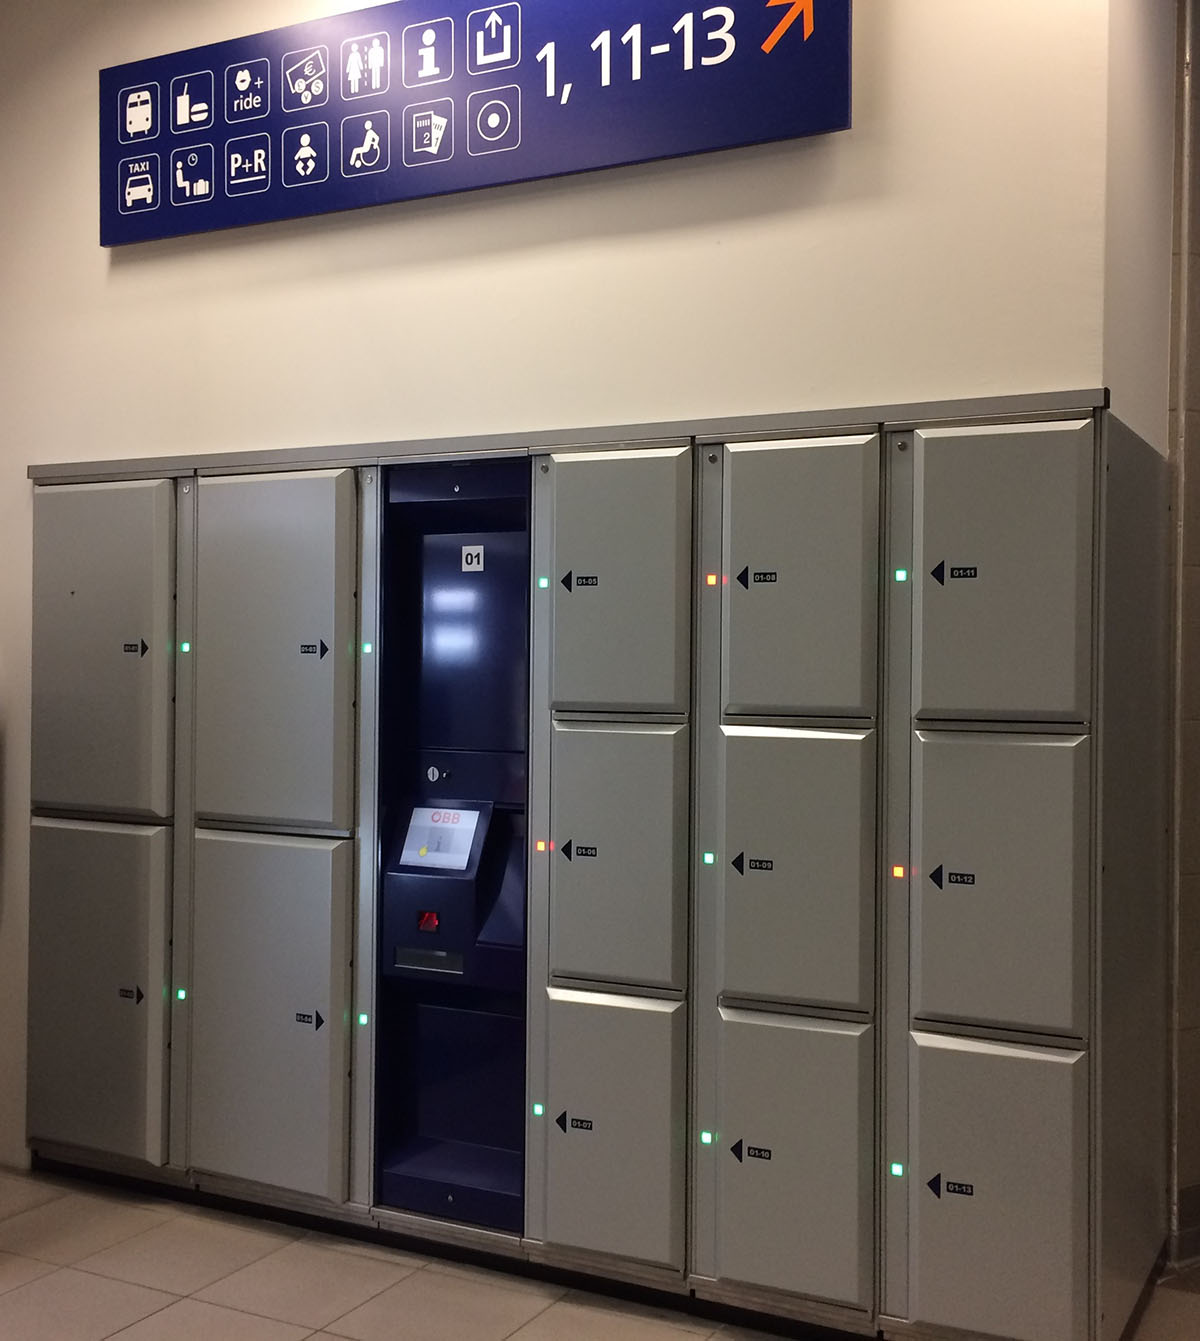 Smart lockers Locksafe5 – keyless locker system with multilingual user interface for easy use.